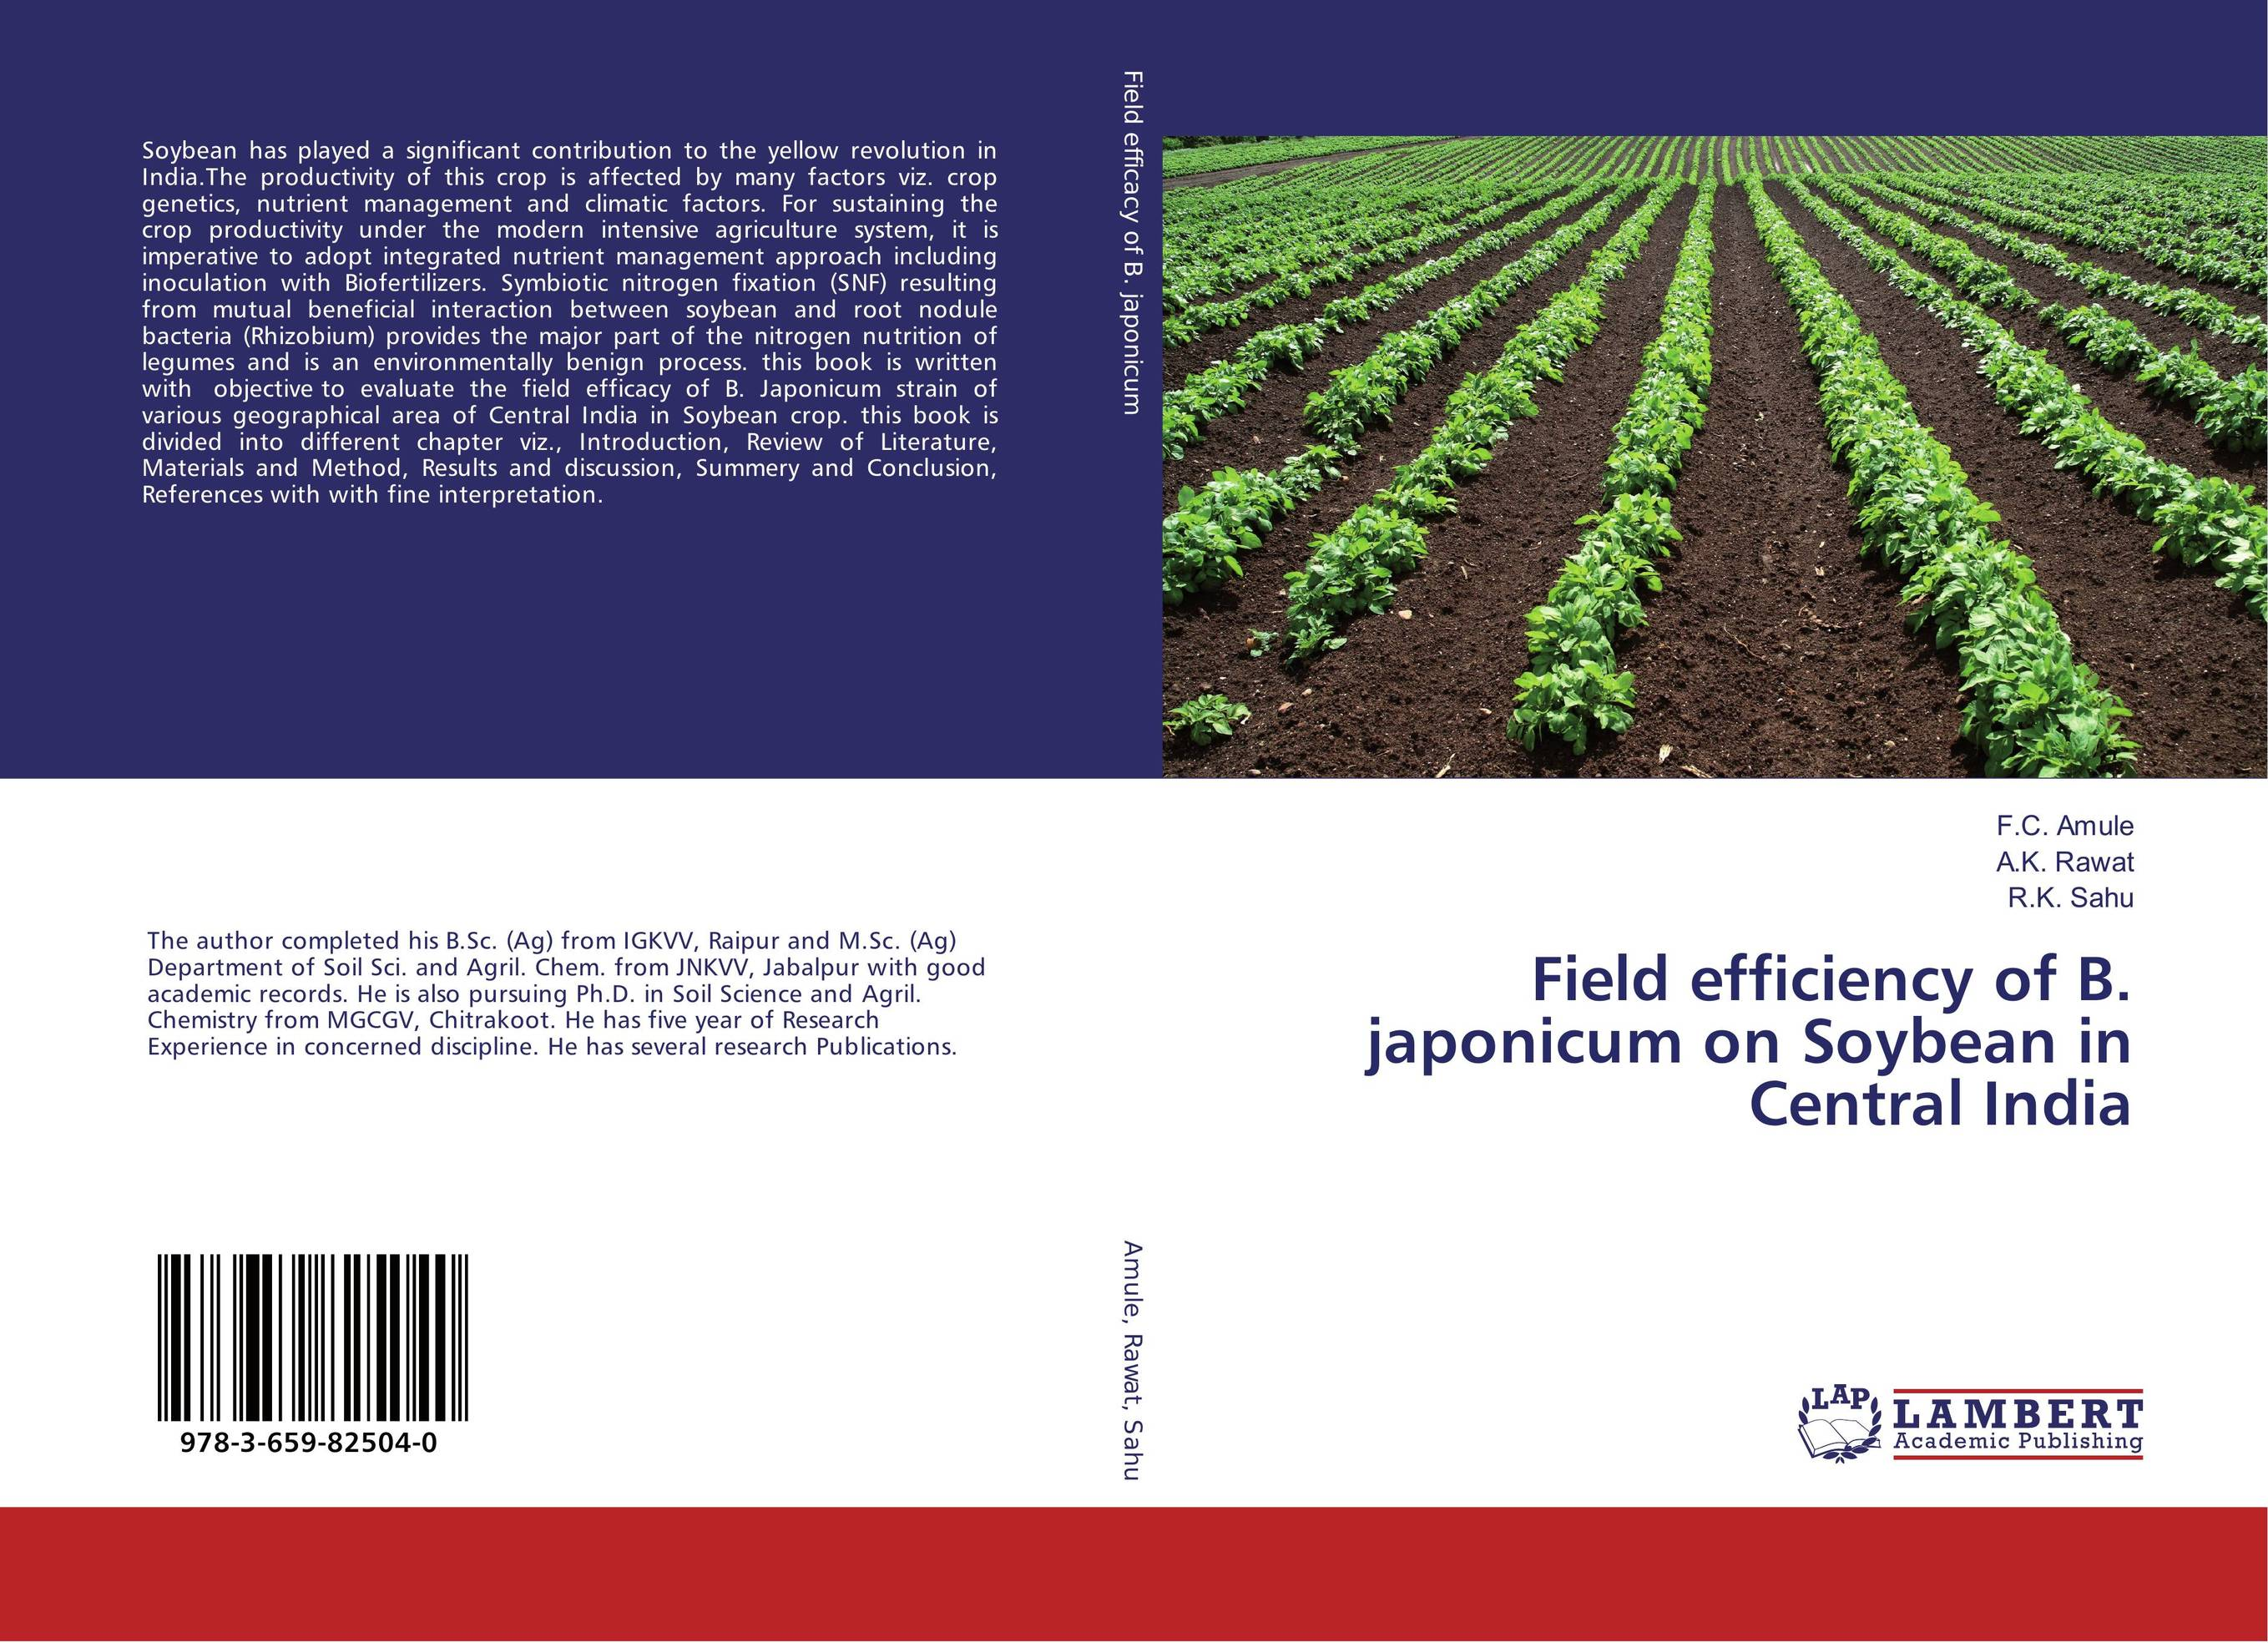 Field efficiency of B. japonicum on Soybean in Central India